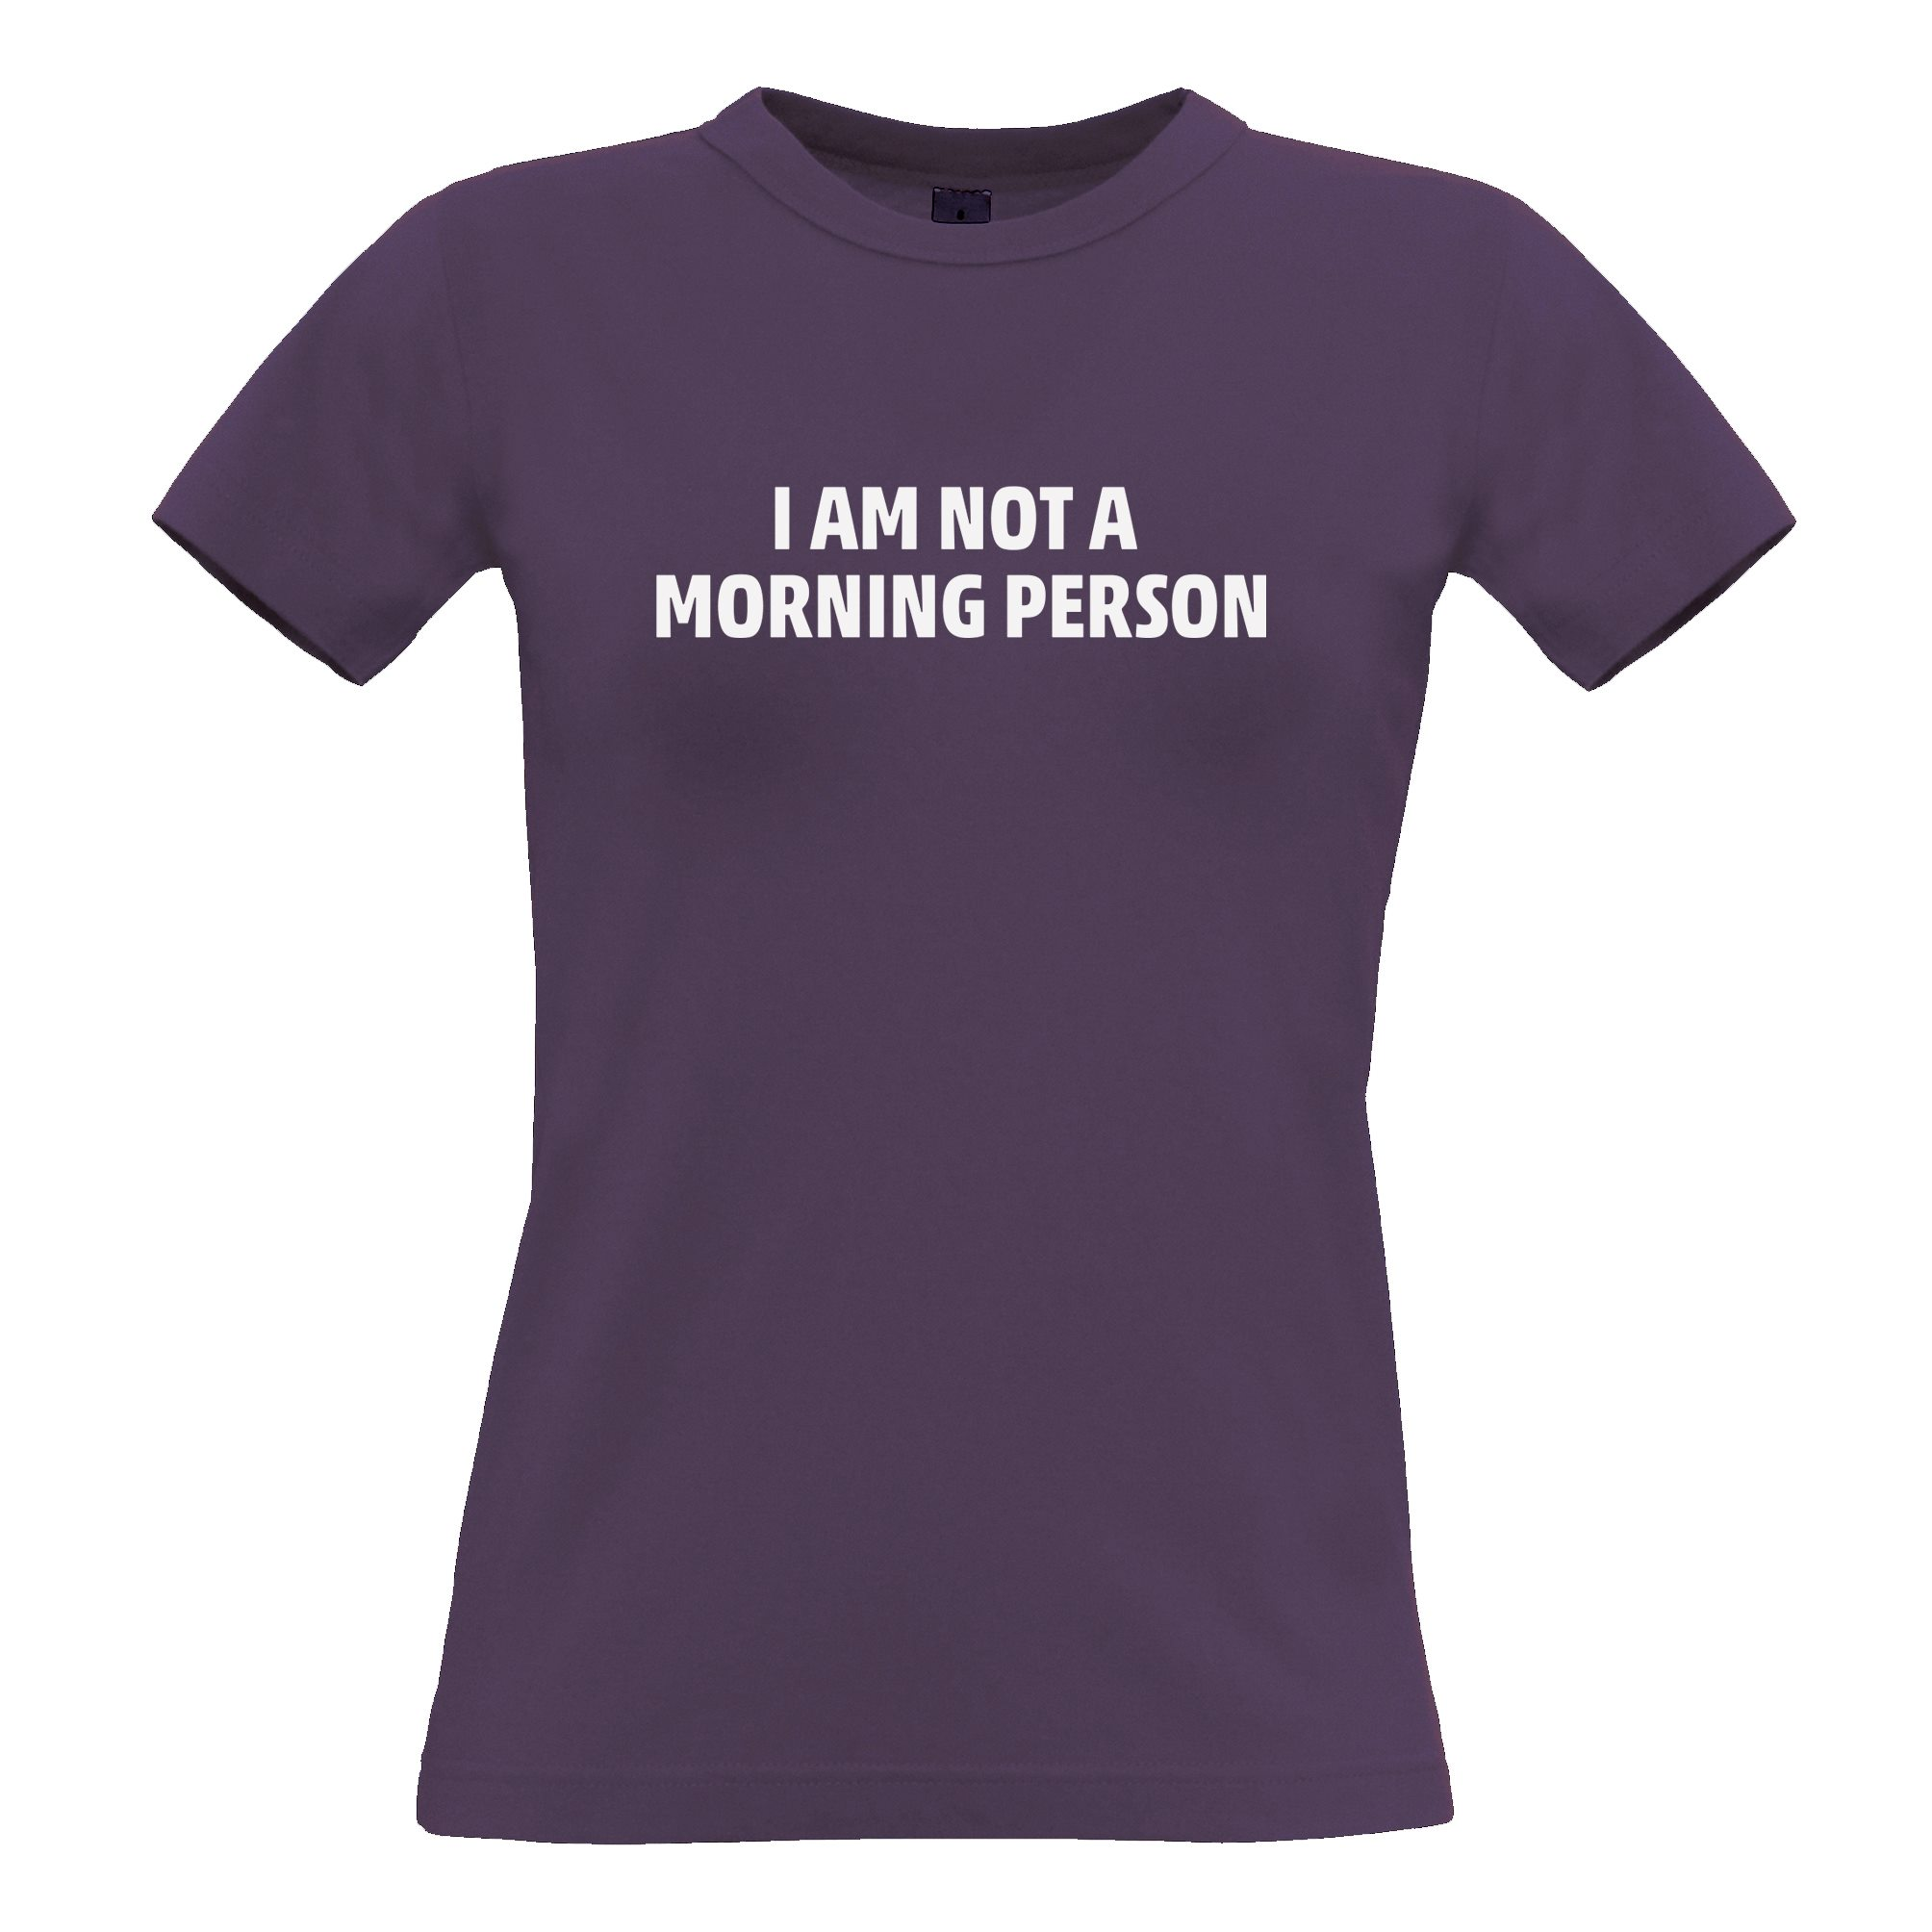 I Am Not A Morning Person Kids T-Shirt lazy love my bed Teenager